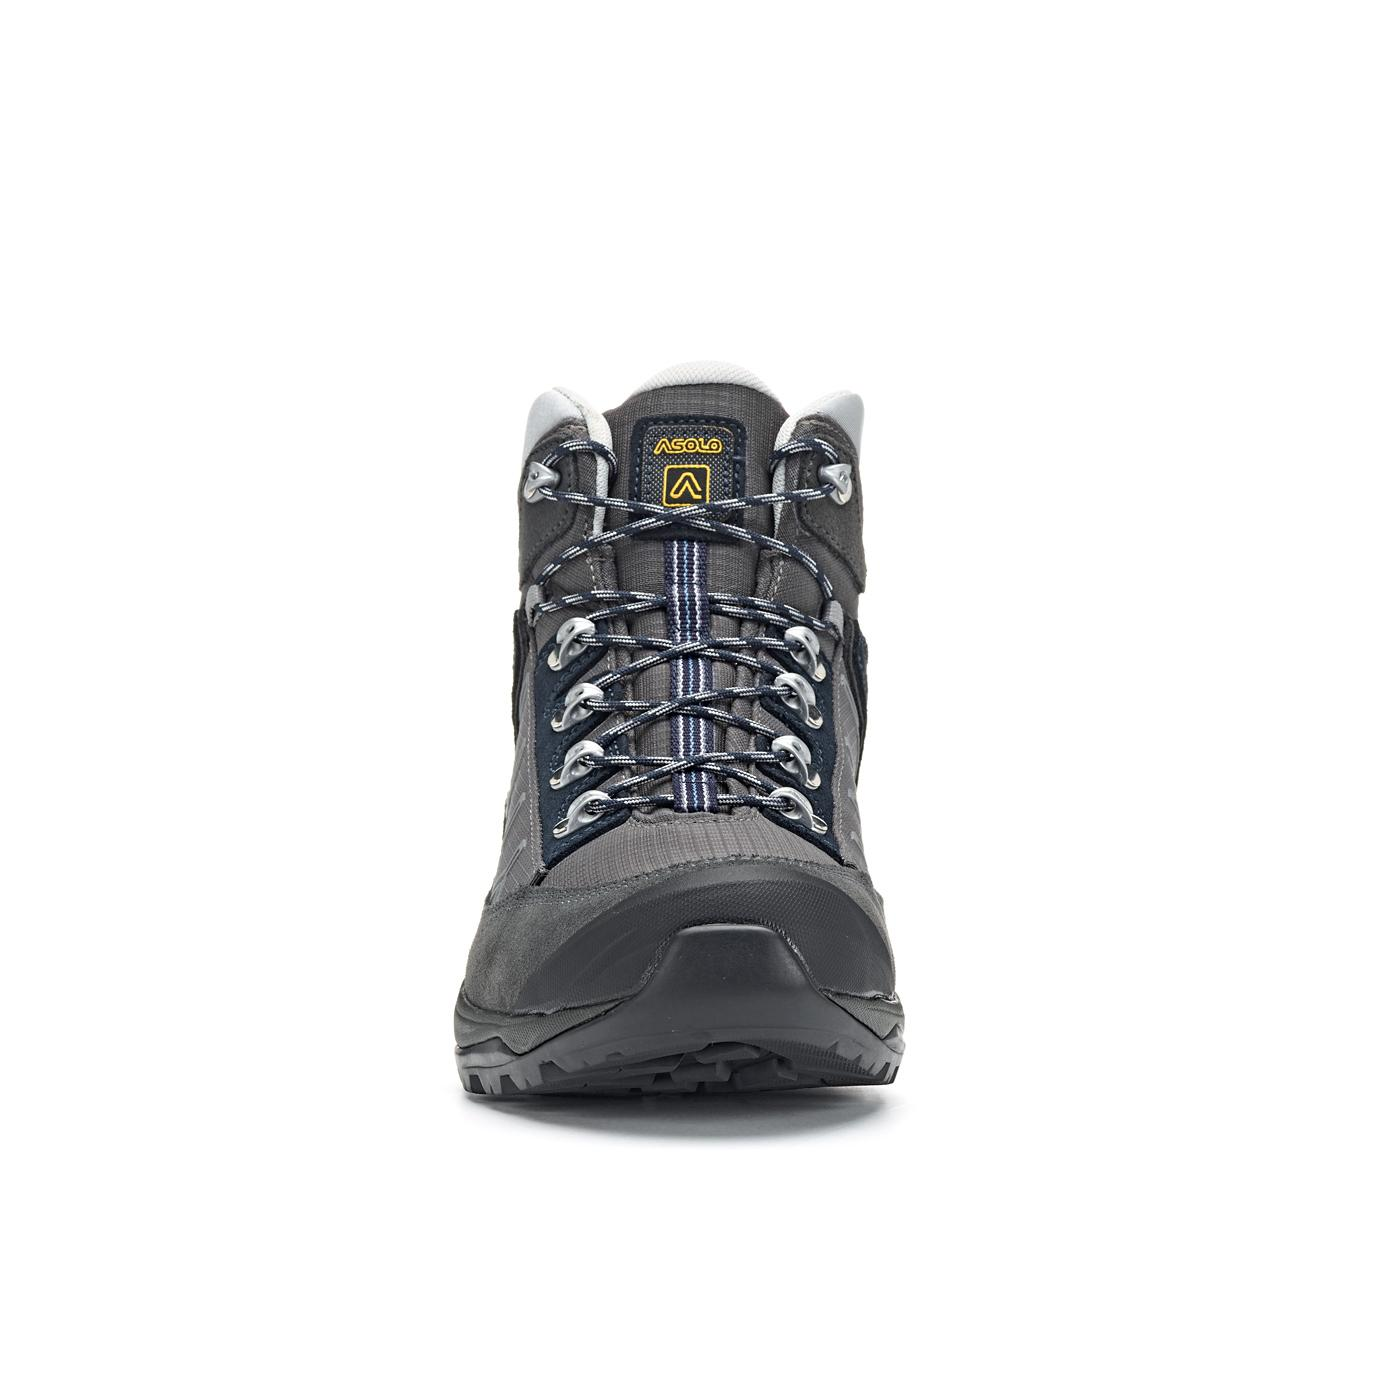 208f27de1df Kenco Outfitters | Asolo Men's Falcon GV Hiking Boot